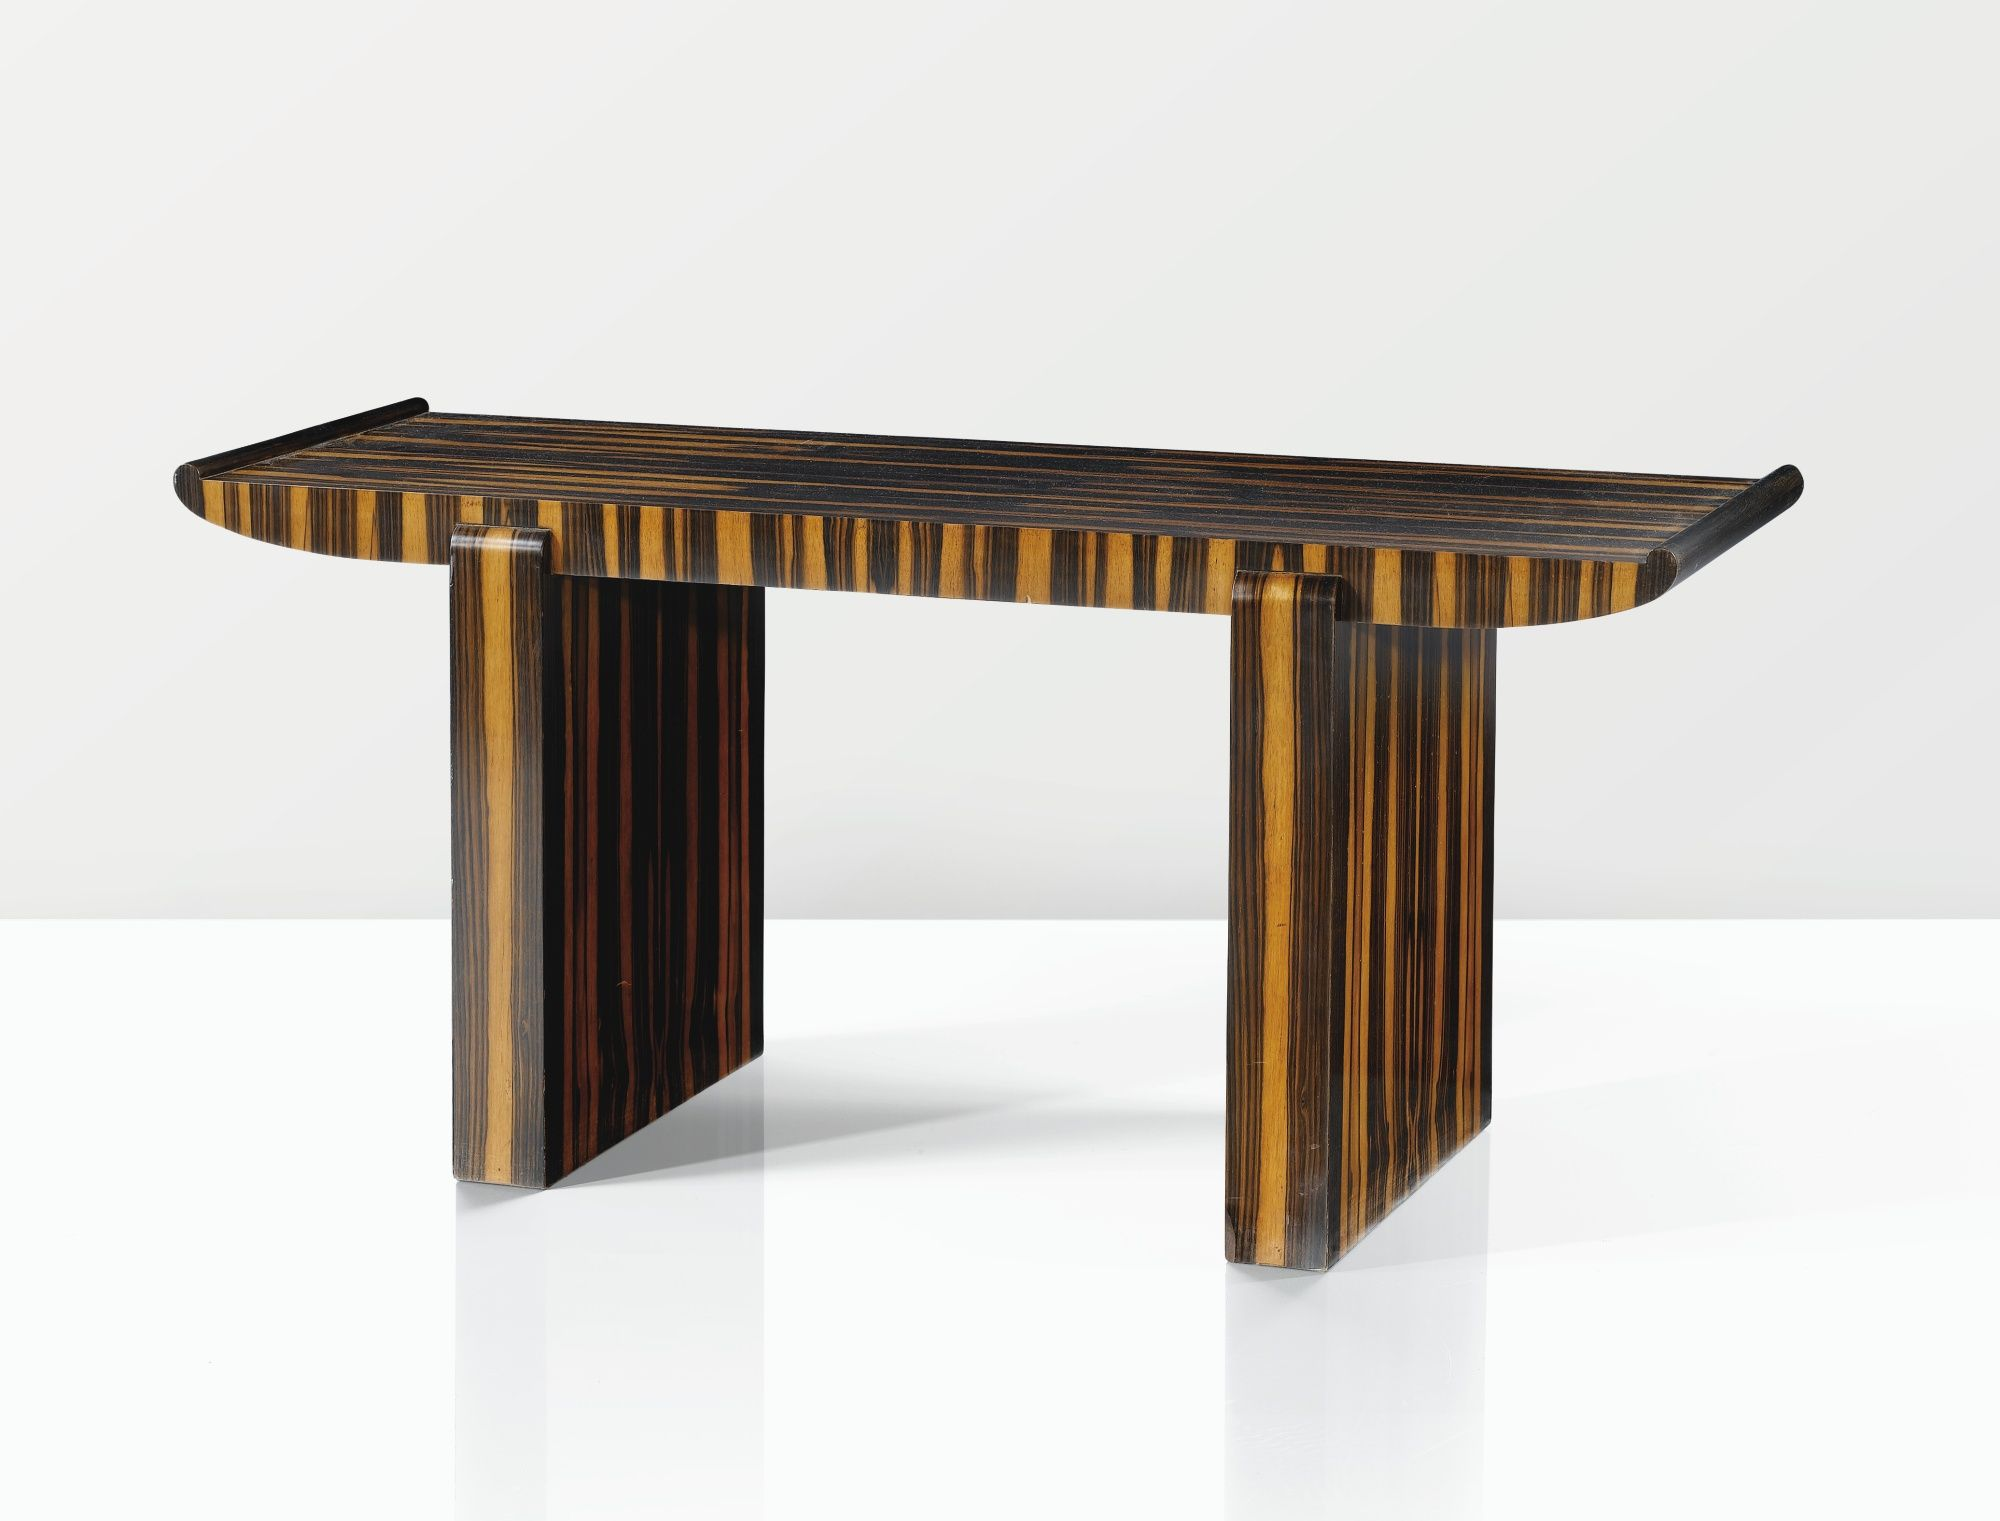 Dominique Andre Domin Marcel Genevriere 1883 1962 1885 1967 Table Basse Vers 1930 1935 A Zebrano Veneer Pagoda Occ Mobilier Art Deco Table Basse Table